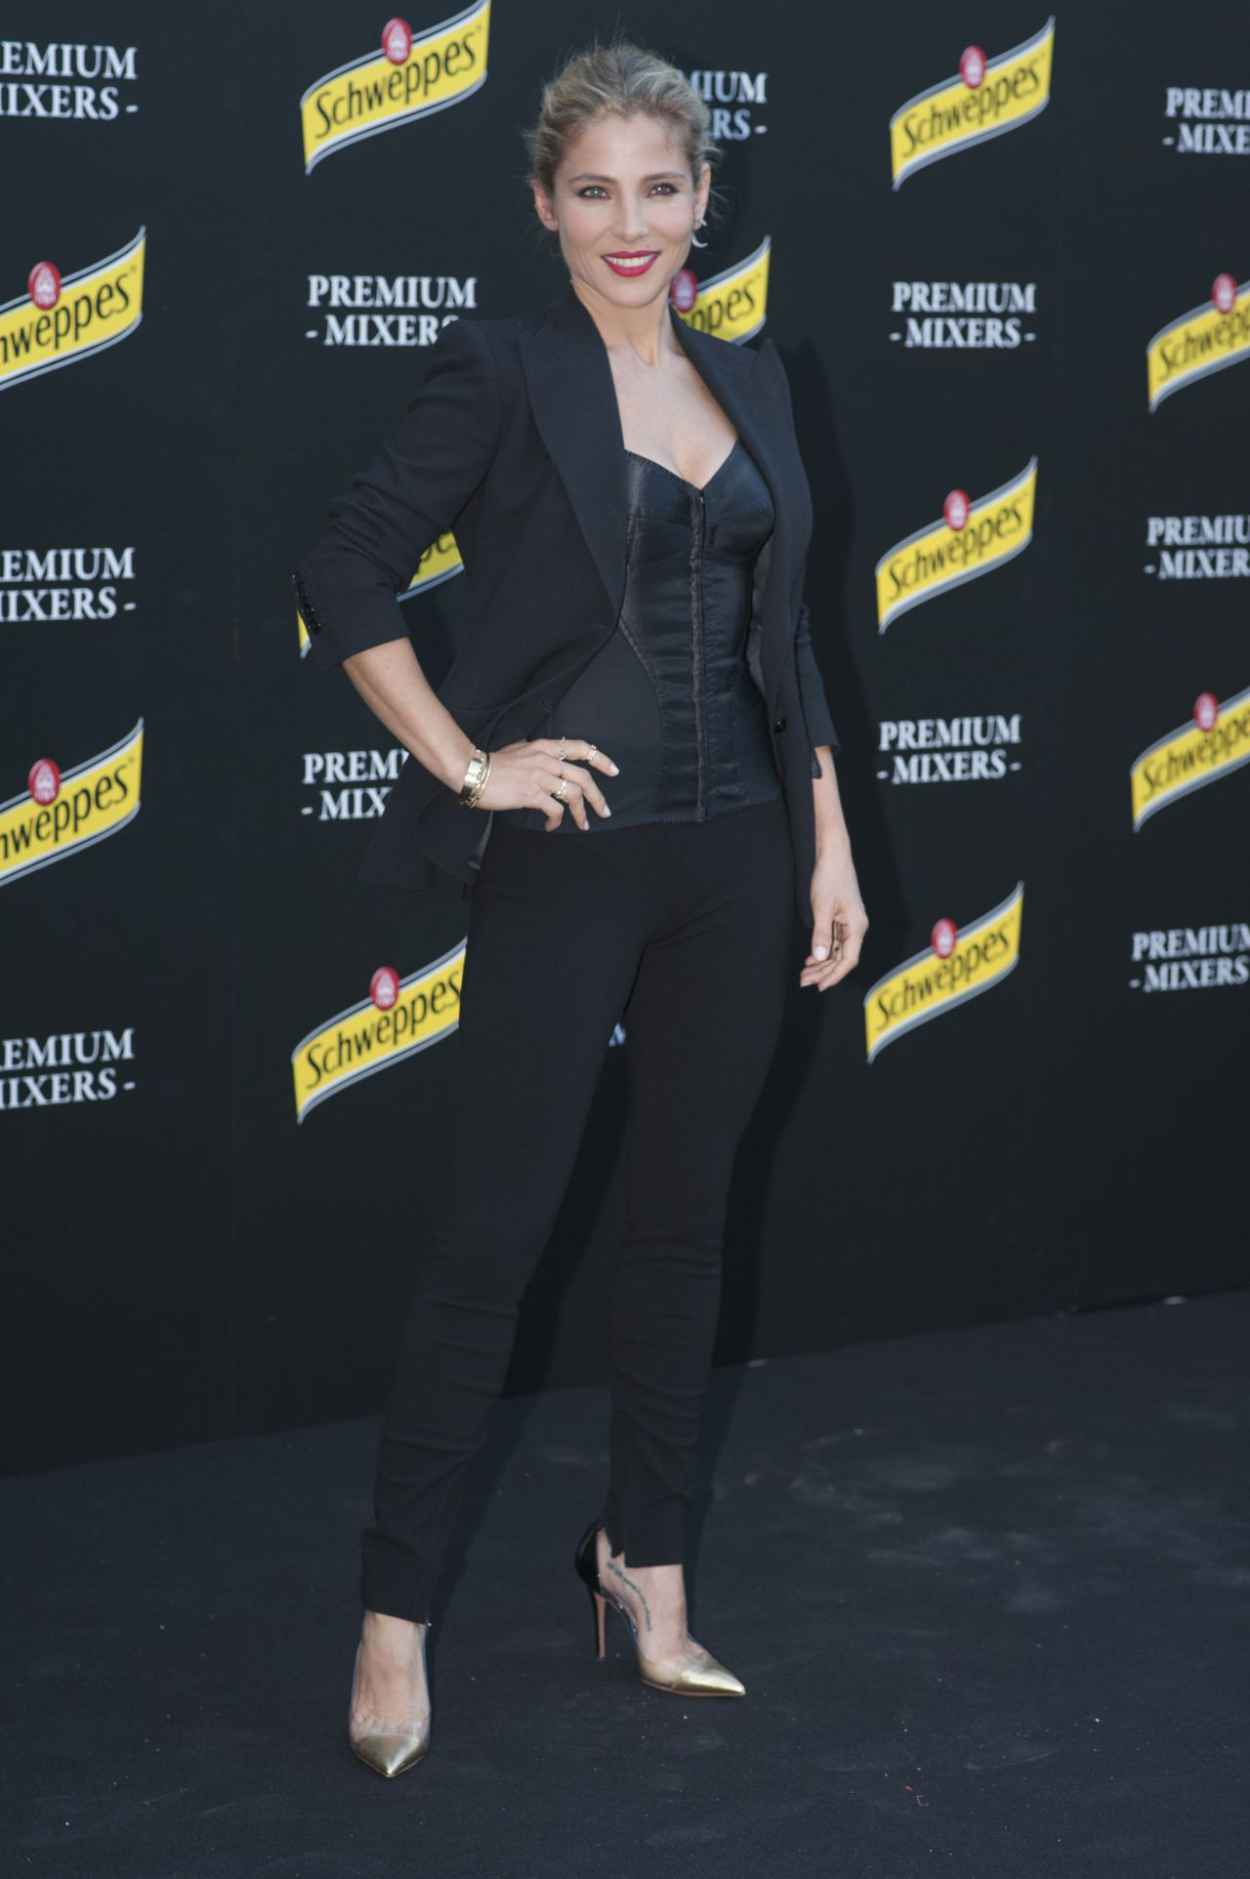 Elsa Pataky - Presentation of the New Convenient Refreshments from Schweppes - June 2015-4